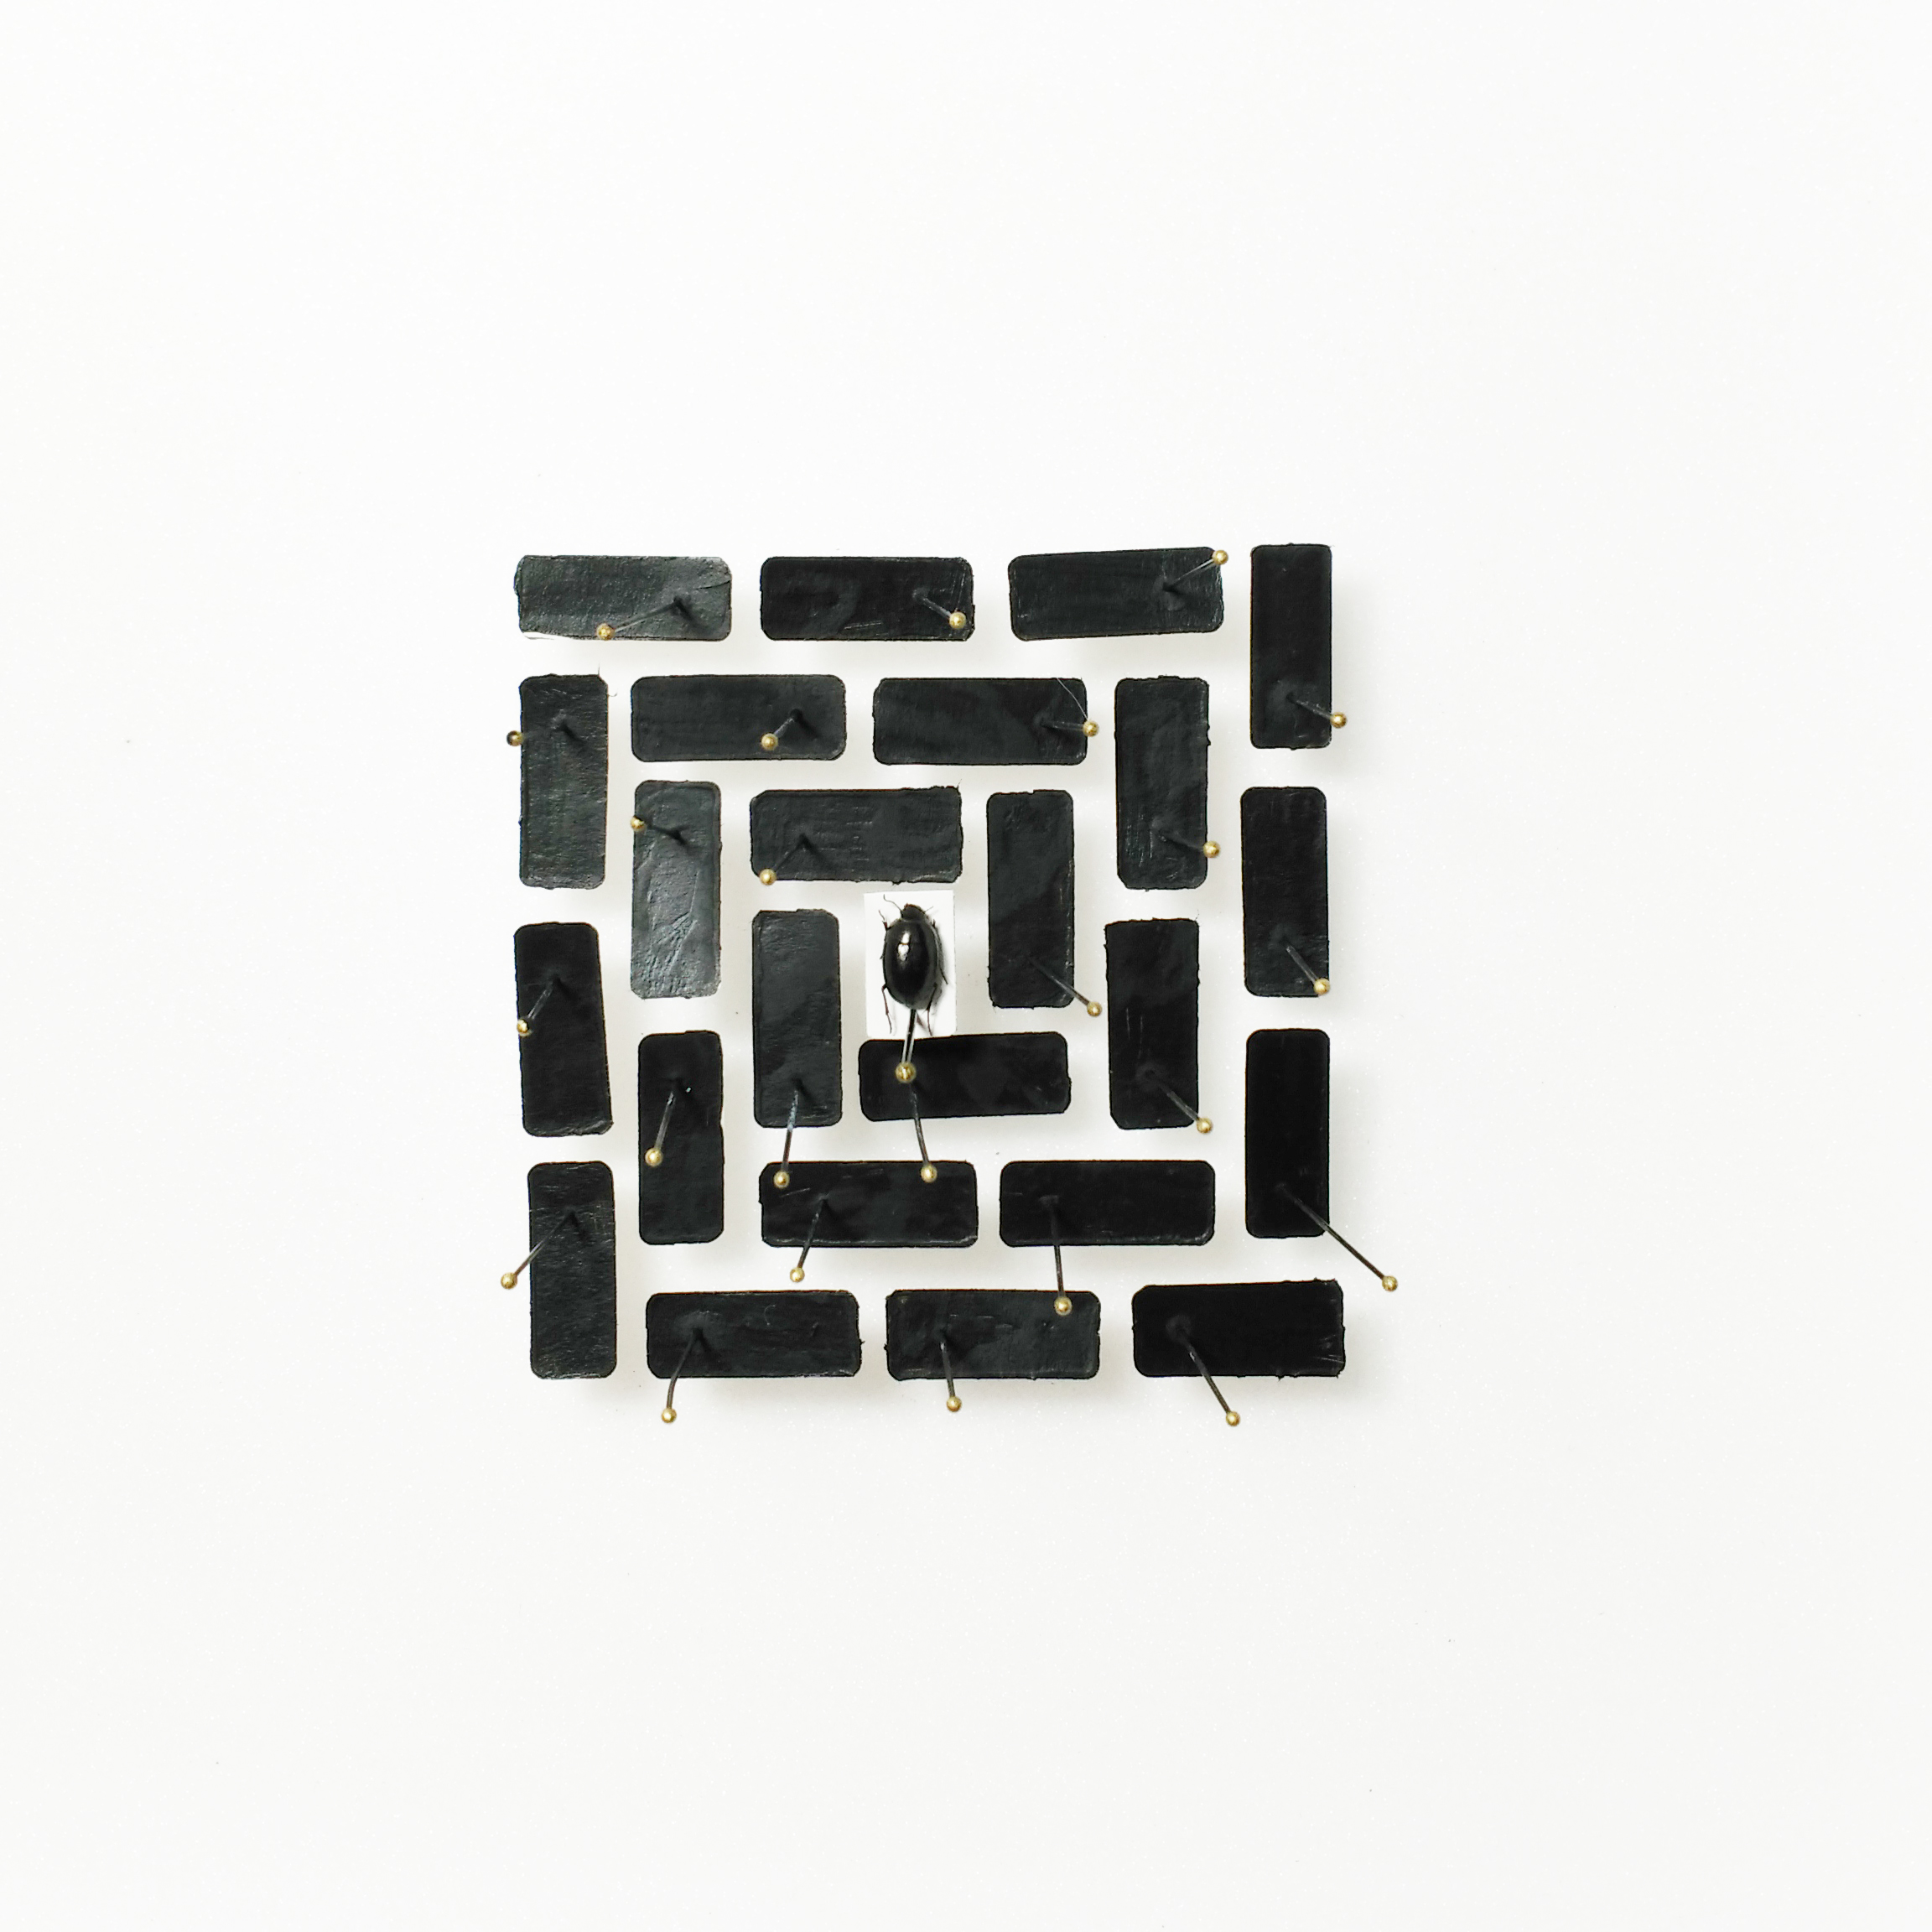 Immateriale Class Labyrinth (Collection of a Magpie Series) 2017 Mixed Media